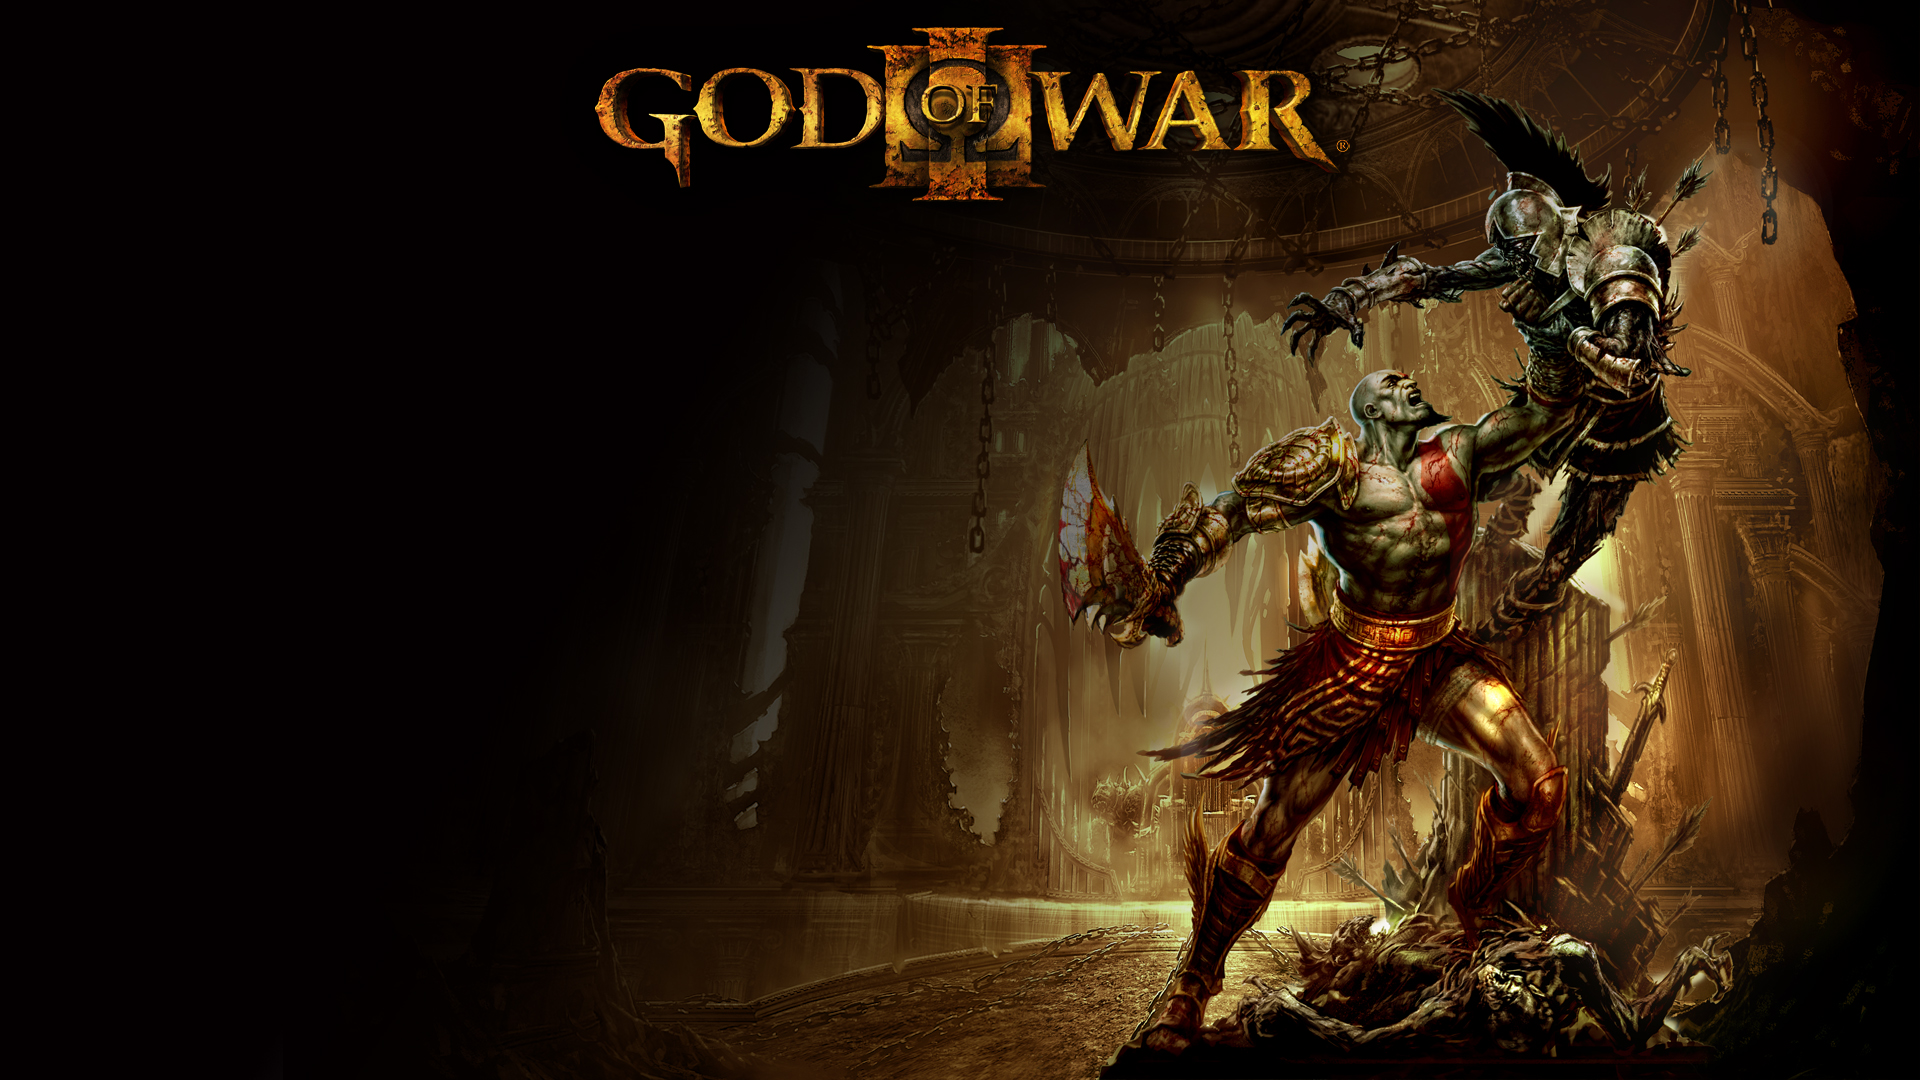 God Of War 3 Wallpaper Hd wallpaper 1920x1080